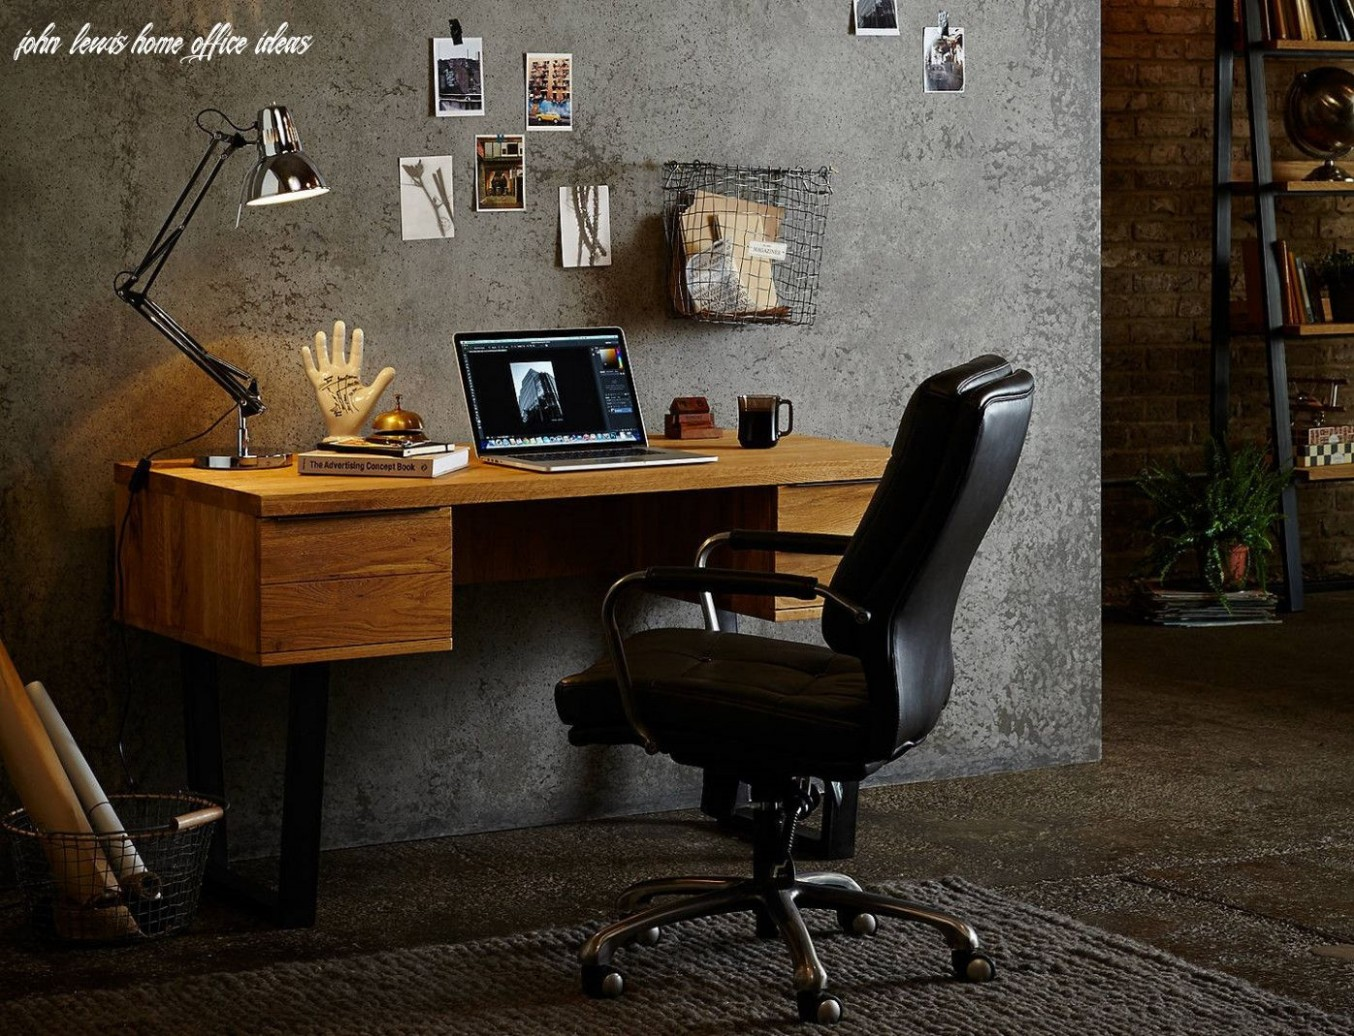 John Lewis Home Office Ideas in 10  Small cupboard, John lewis  - John Lewis Home Office Ideas